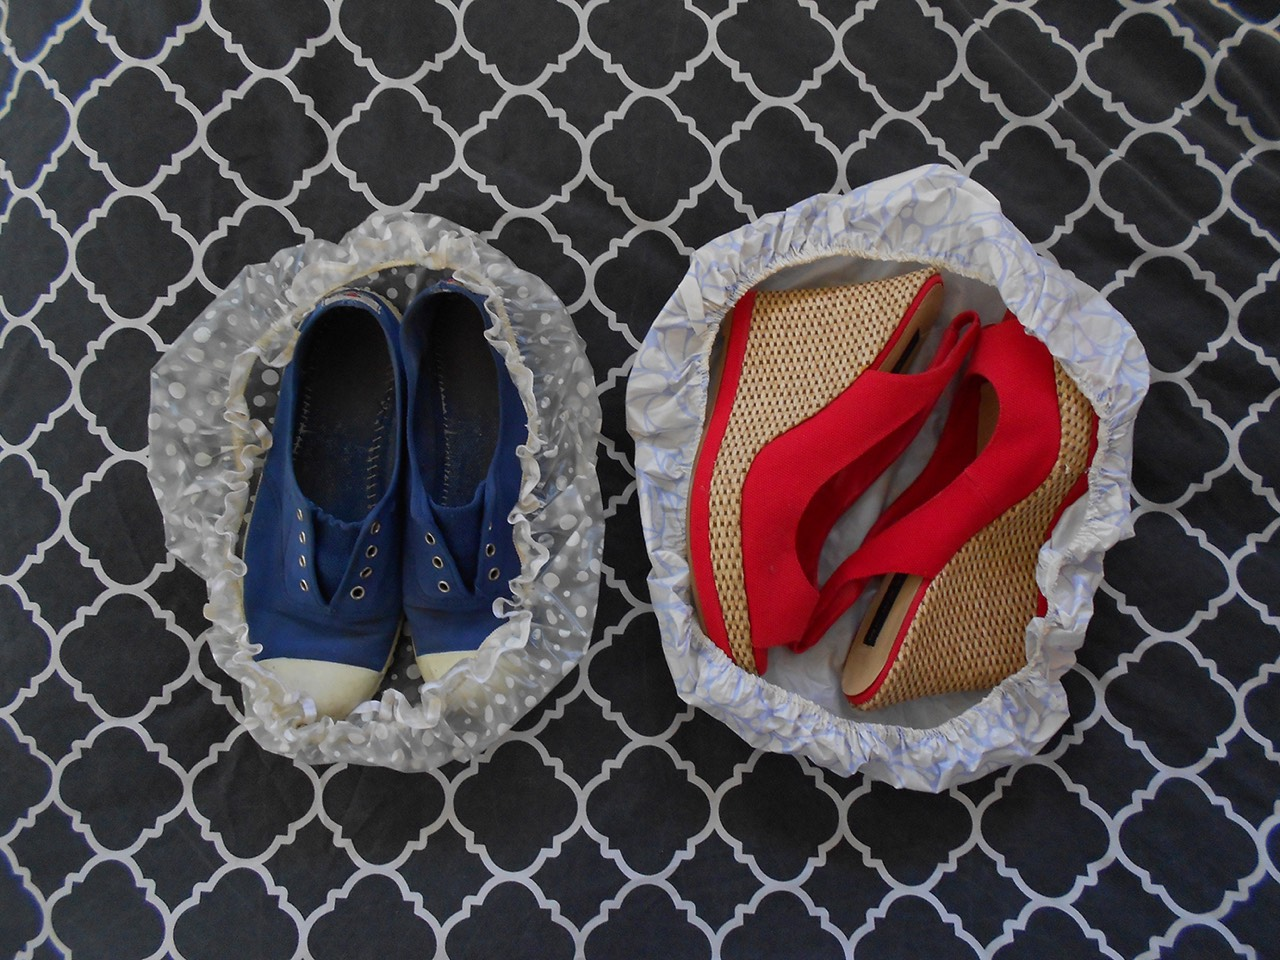 When packing your bag to go on holiday, use shower caps to cover your shoes to stop them damaging your clothes or making them dirty 👠👟